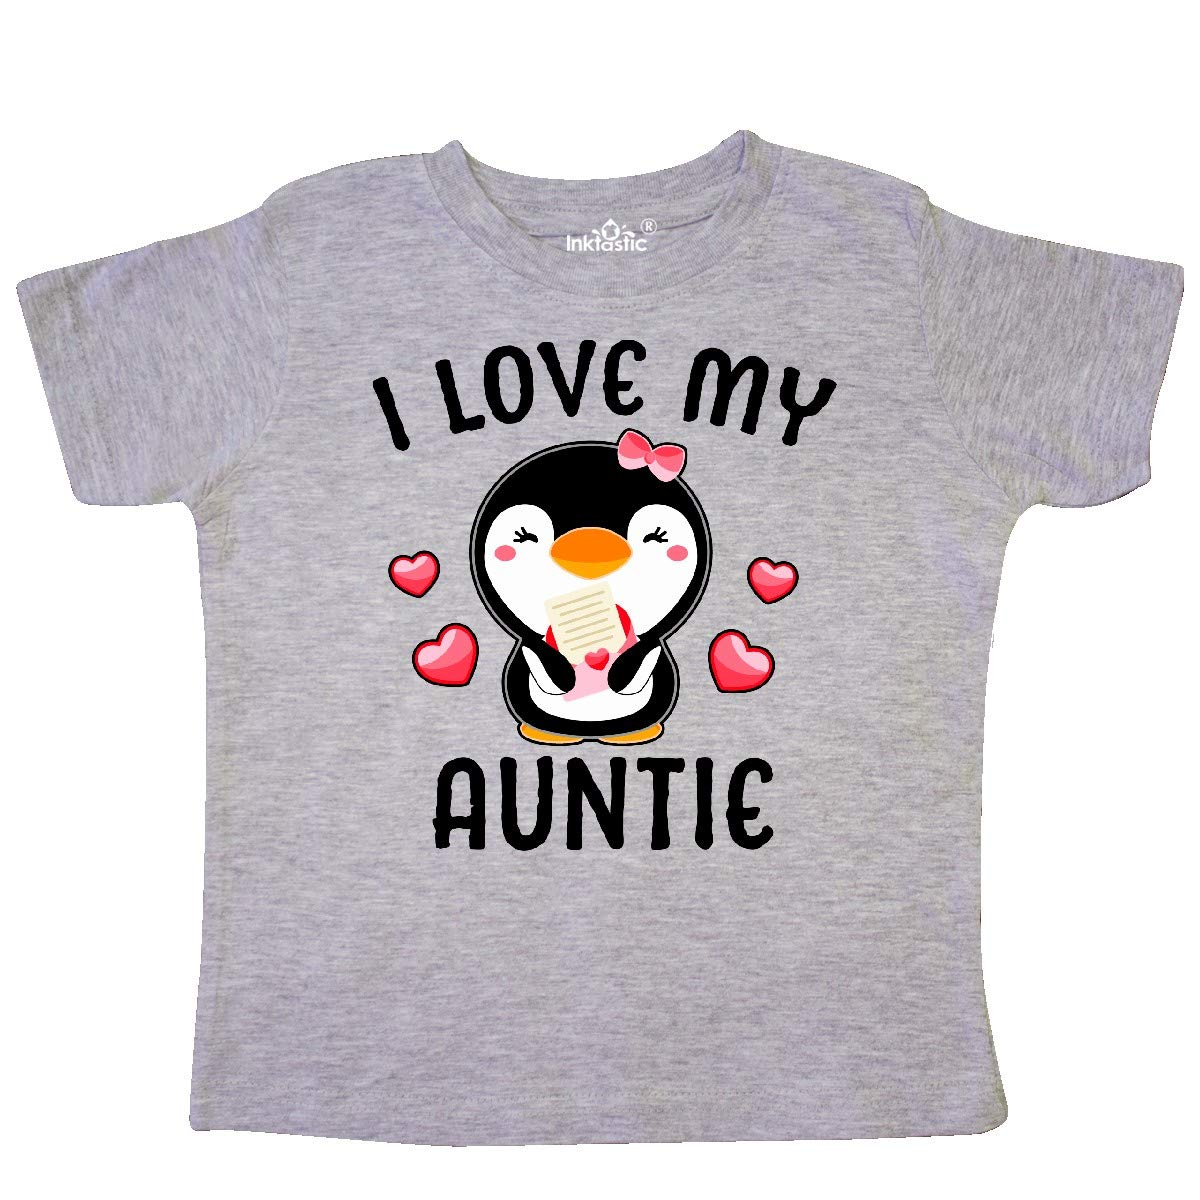 inktastic I Love My Auntie with Cute Penguin and Hearts Toddler T-Shirt